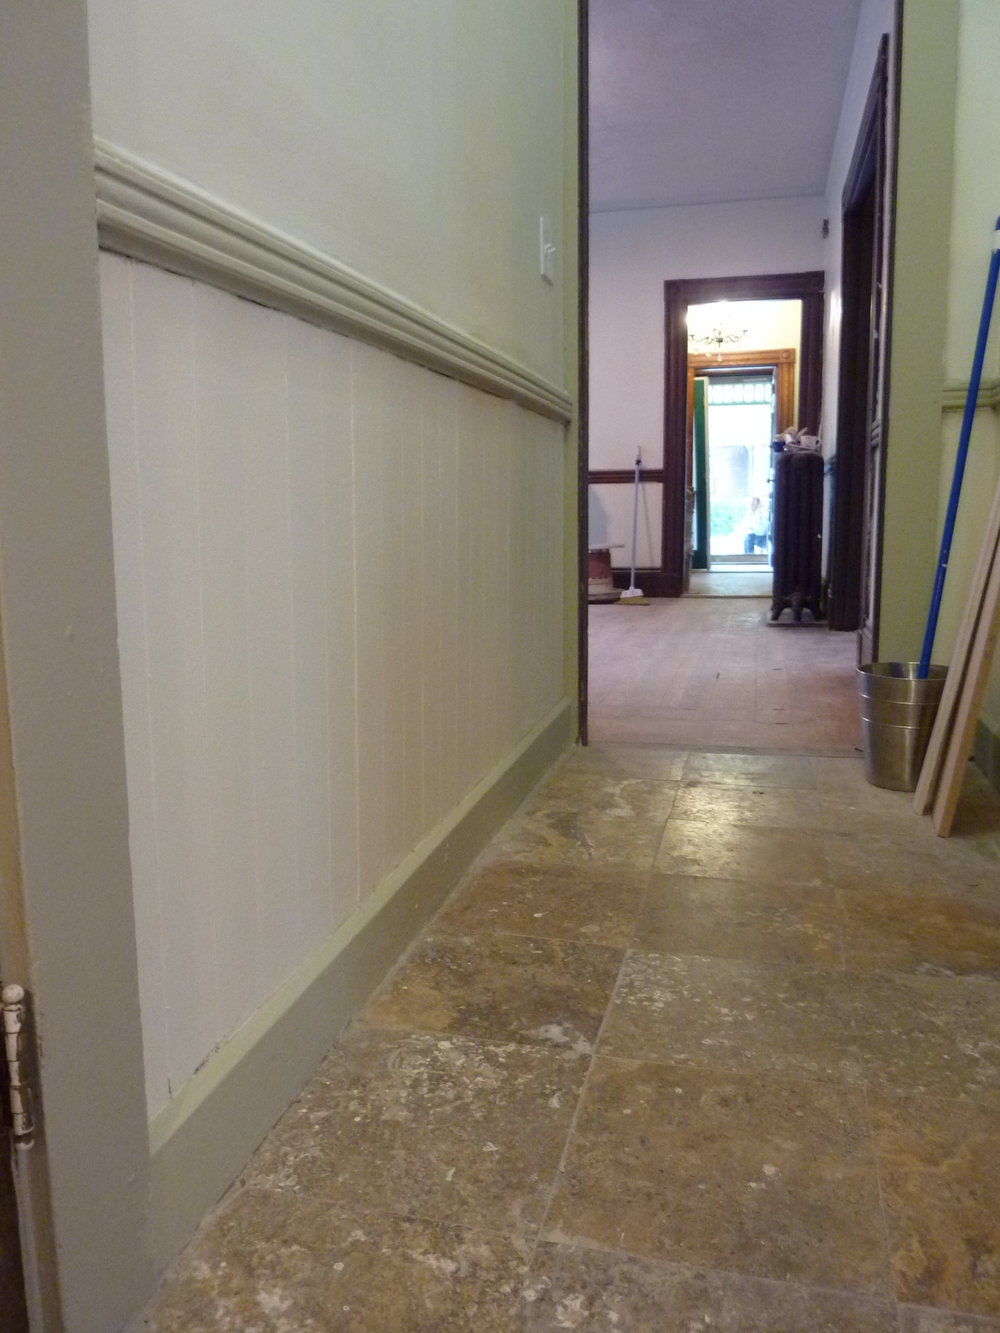 Wainscoting and flooring are looking good.